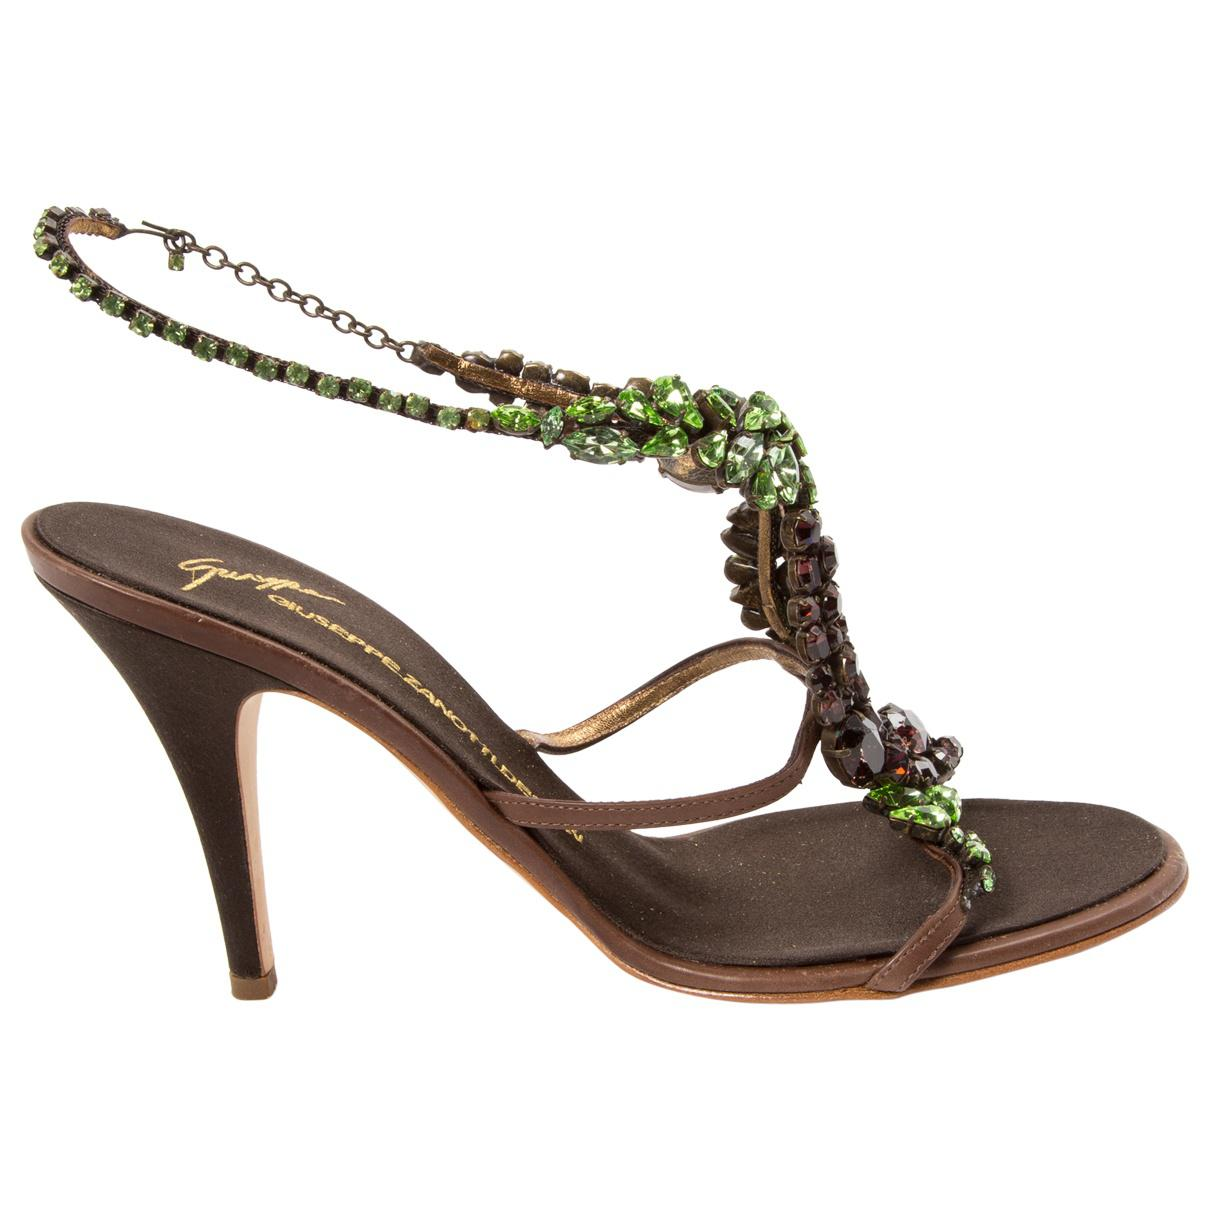 Pre-owned - Cloth sandals Giuseppe Zanotti 1cQkwD